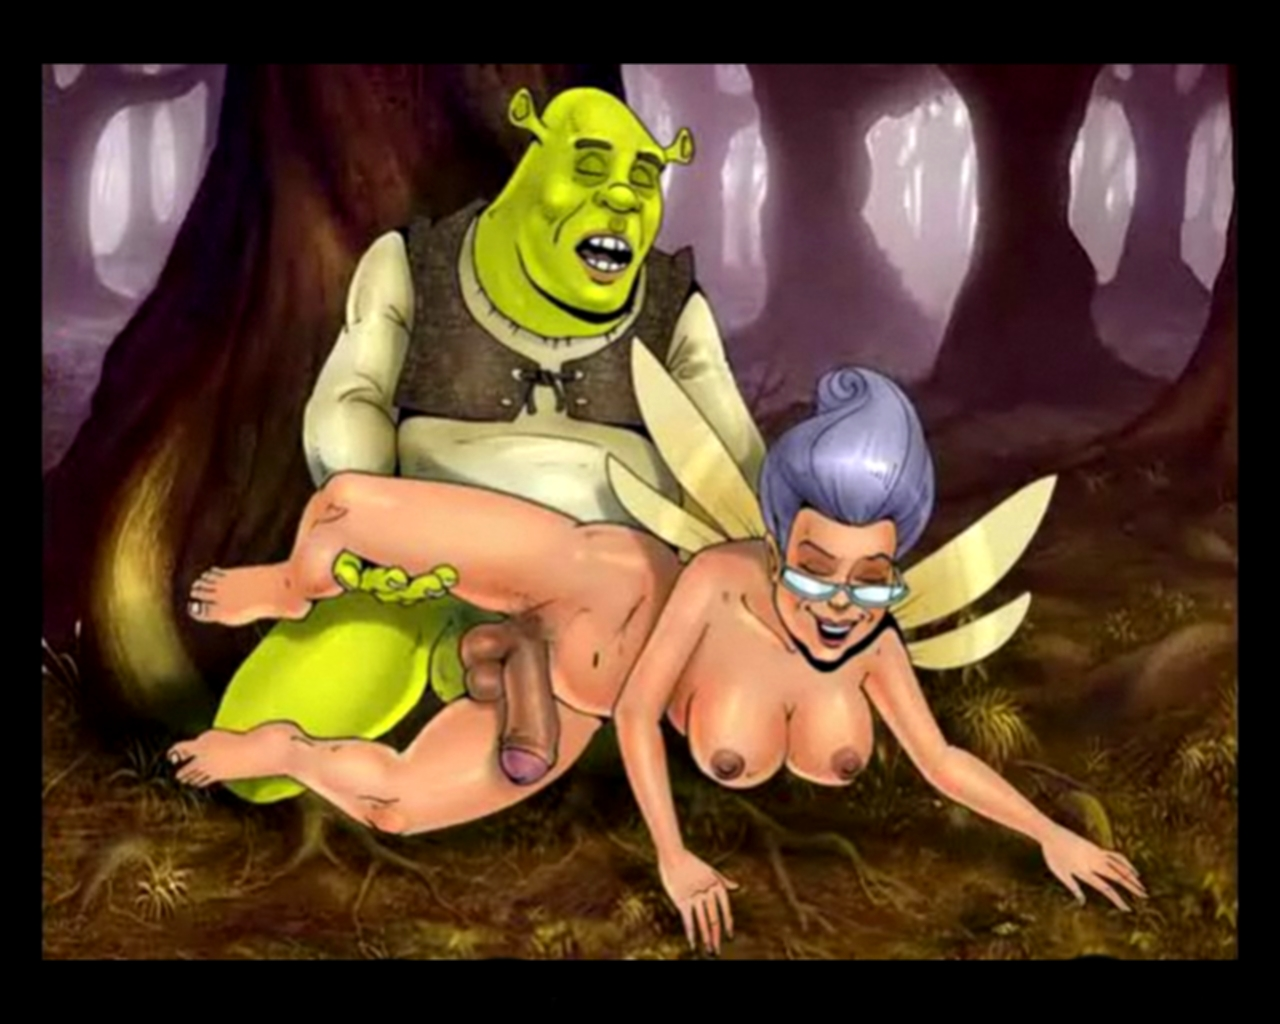 Sherk sex erotik film xxx movies